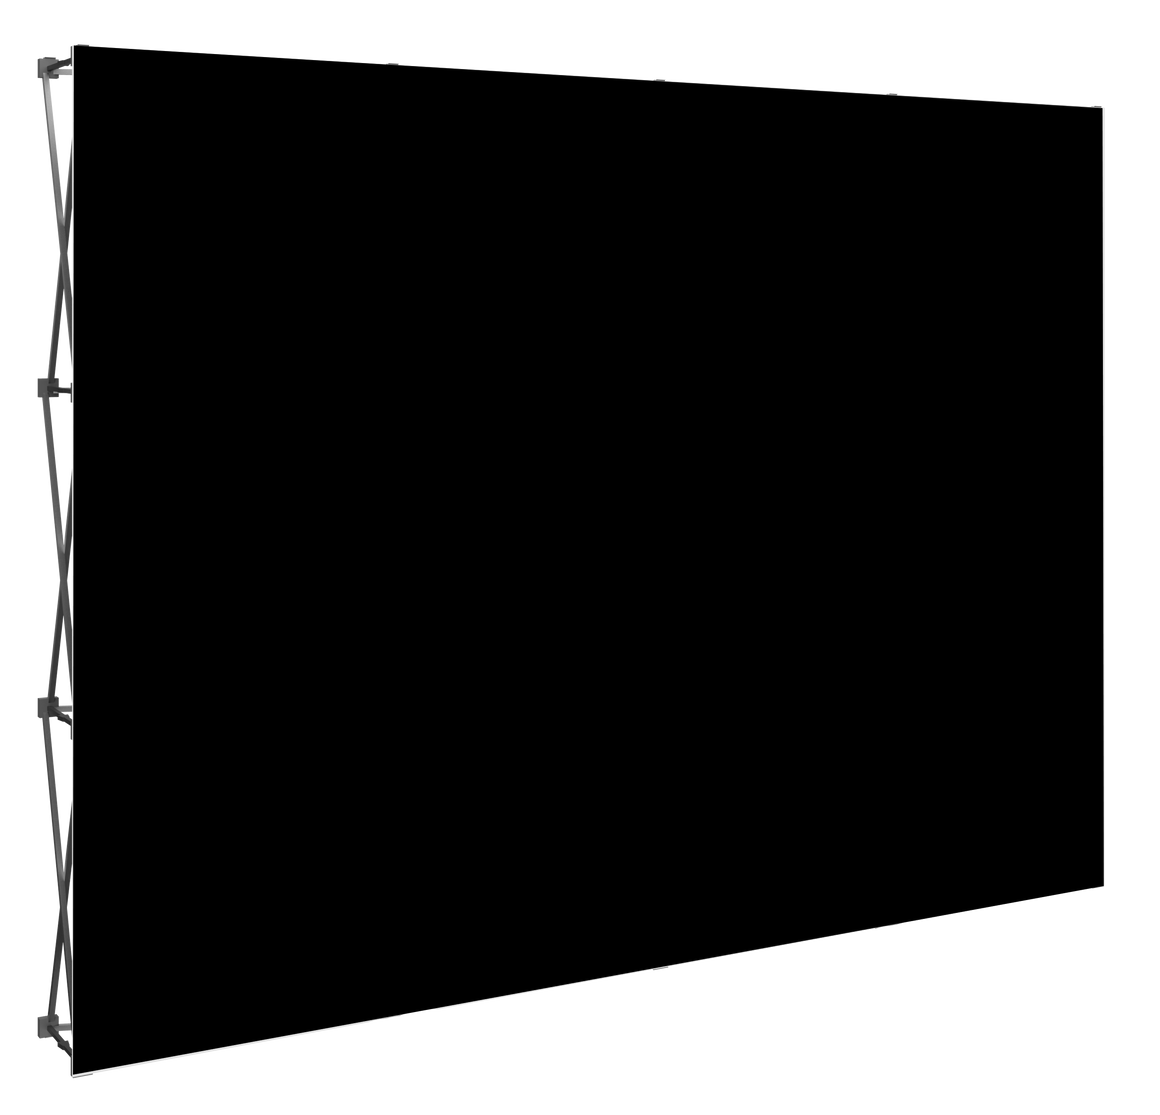 Premium Fabric Backdrop Kit - 5'x8'